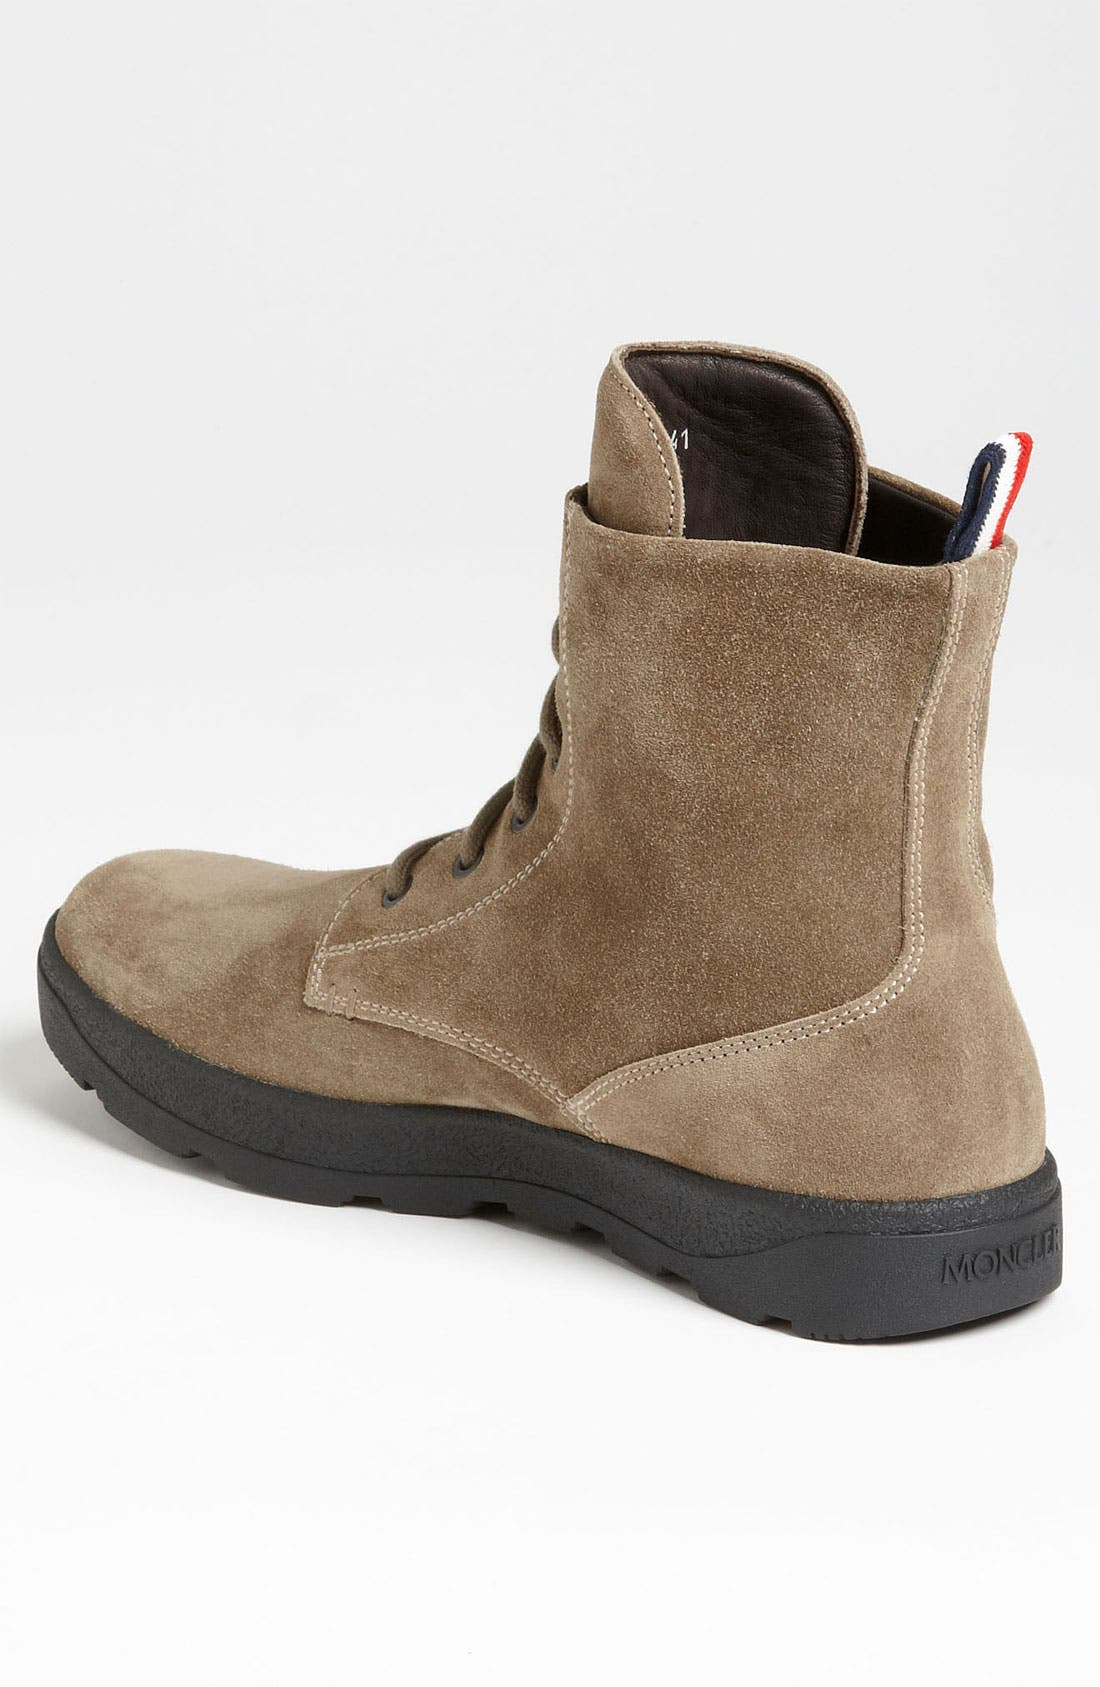 Alternate Image 2  - Moncler 'Park' Suede Boot